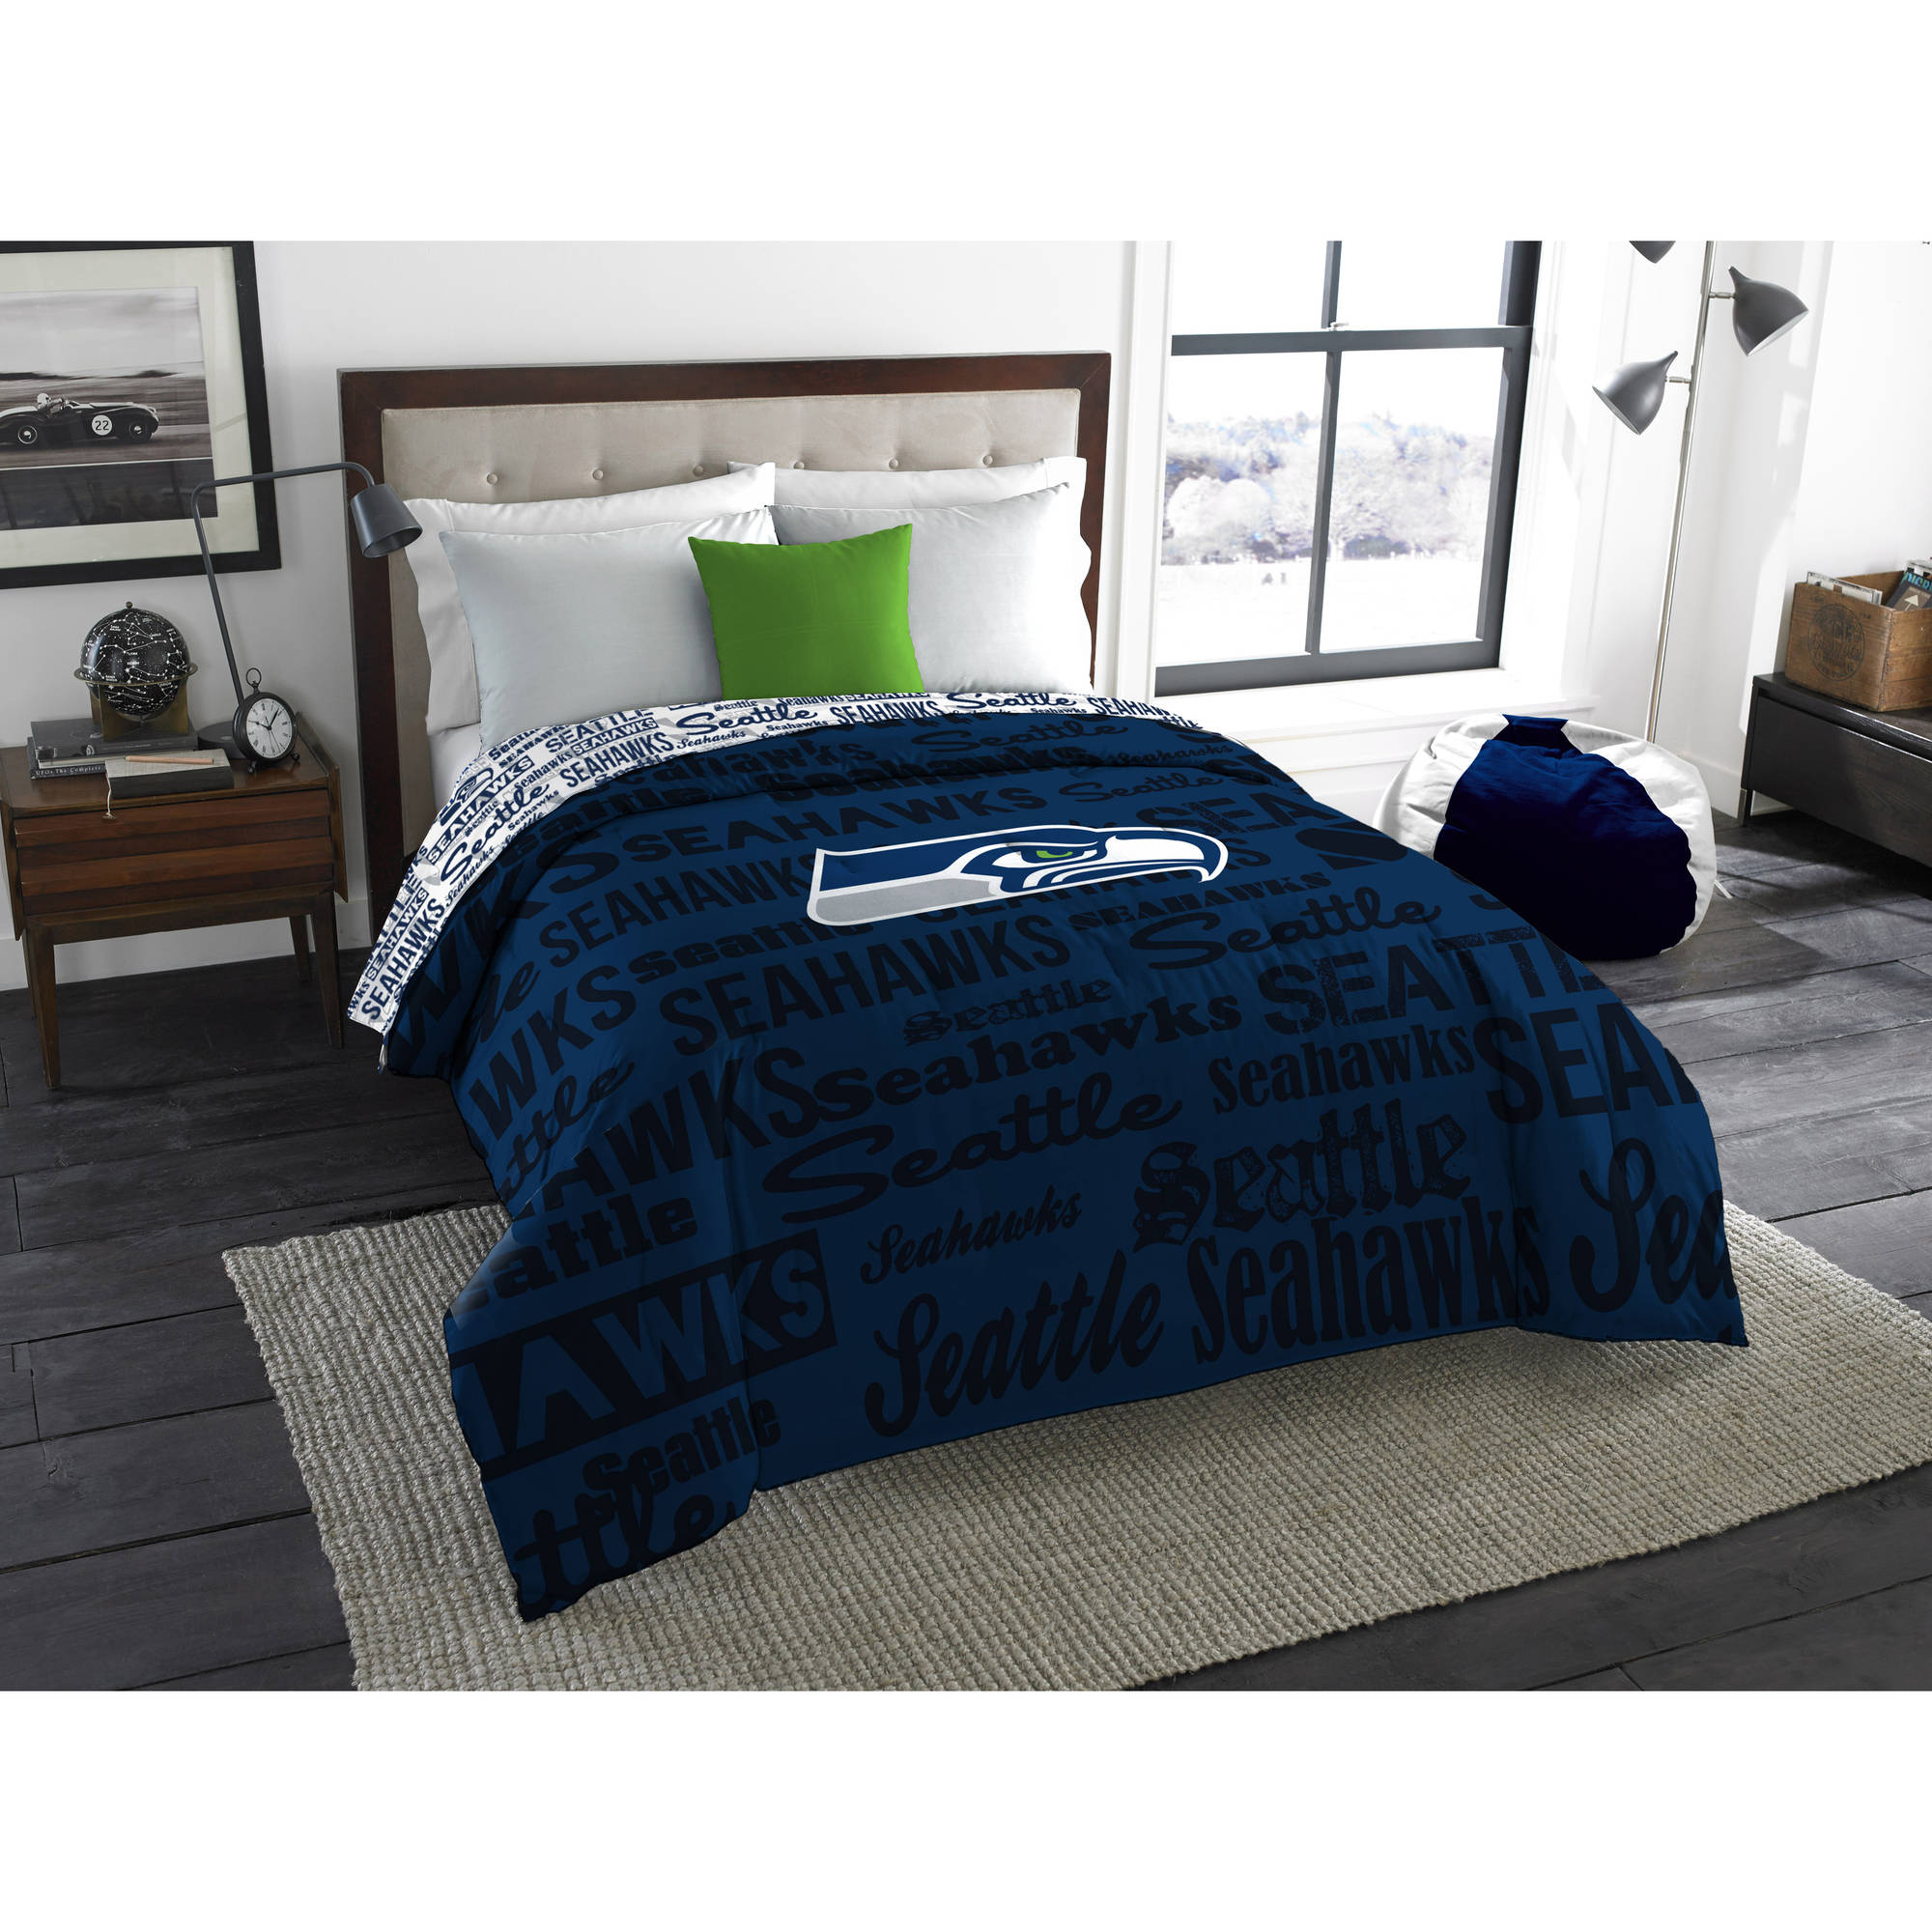 "NFL Seattle Seahawks ""Anthem"" Twin/Full Bedding Comforter"